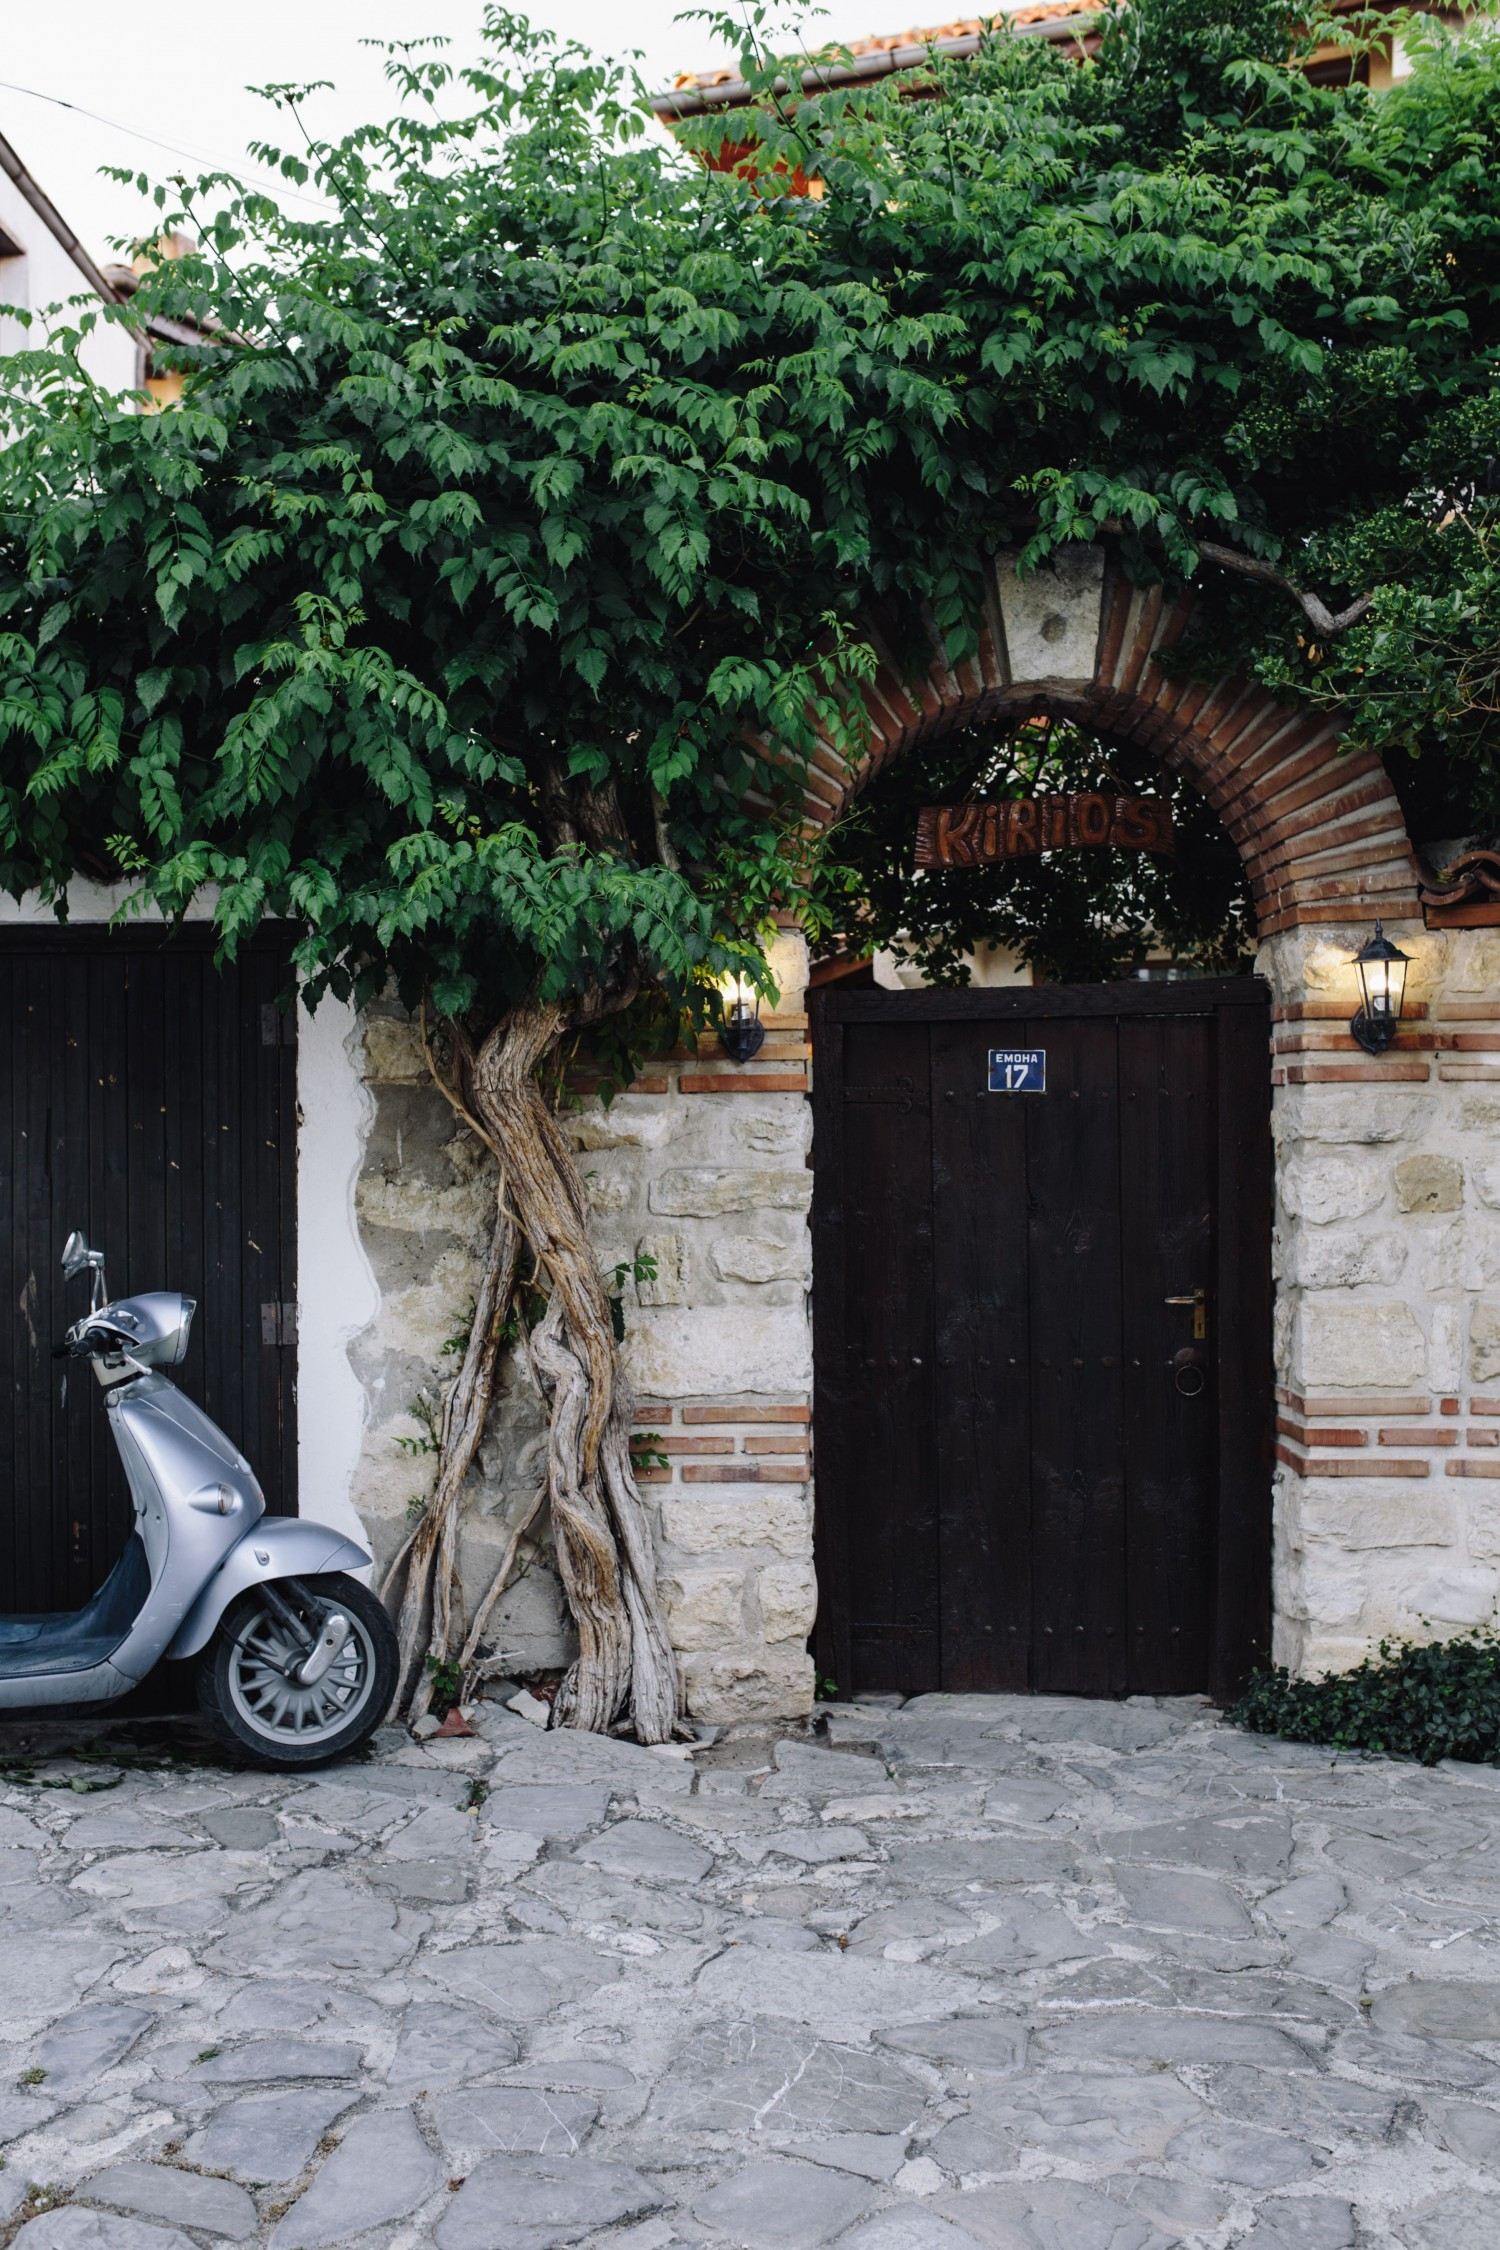 kaboompics_scooter-parked-next-to-the-door-on-an-old-street-in-nessebar-bulgaria